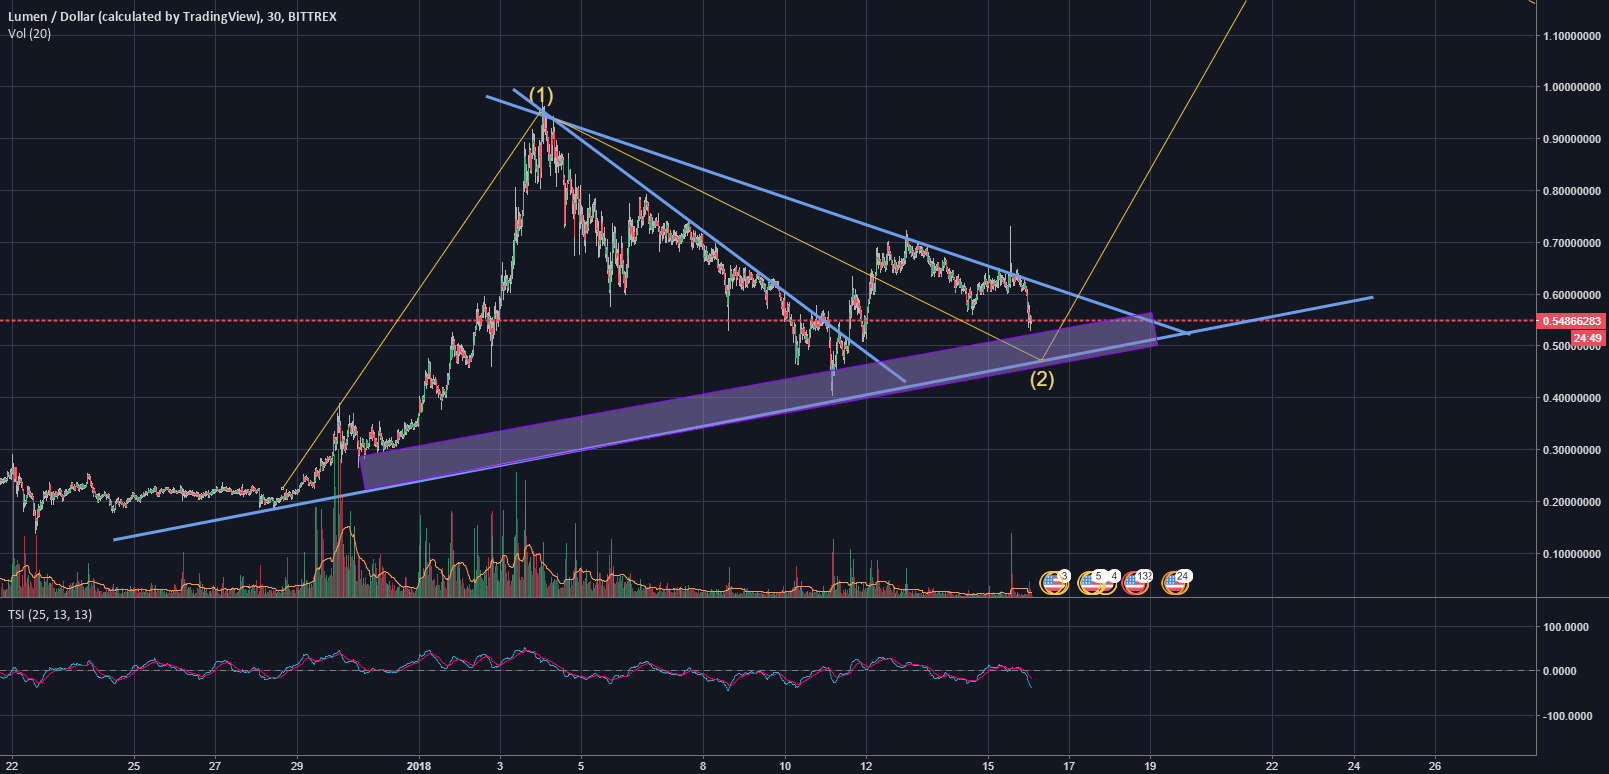 XLM revision